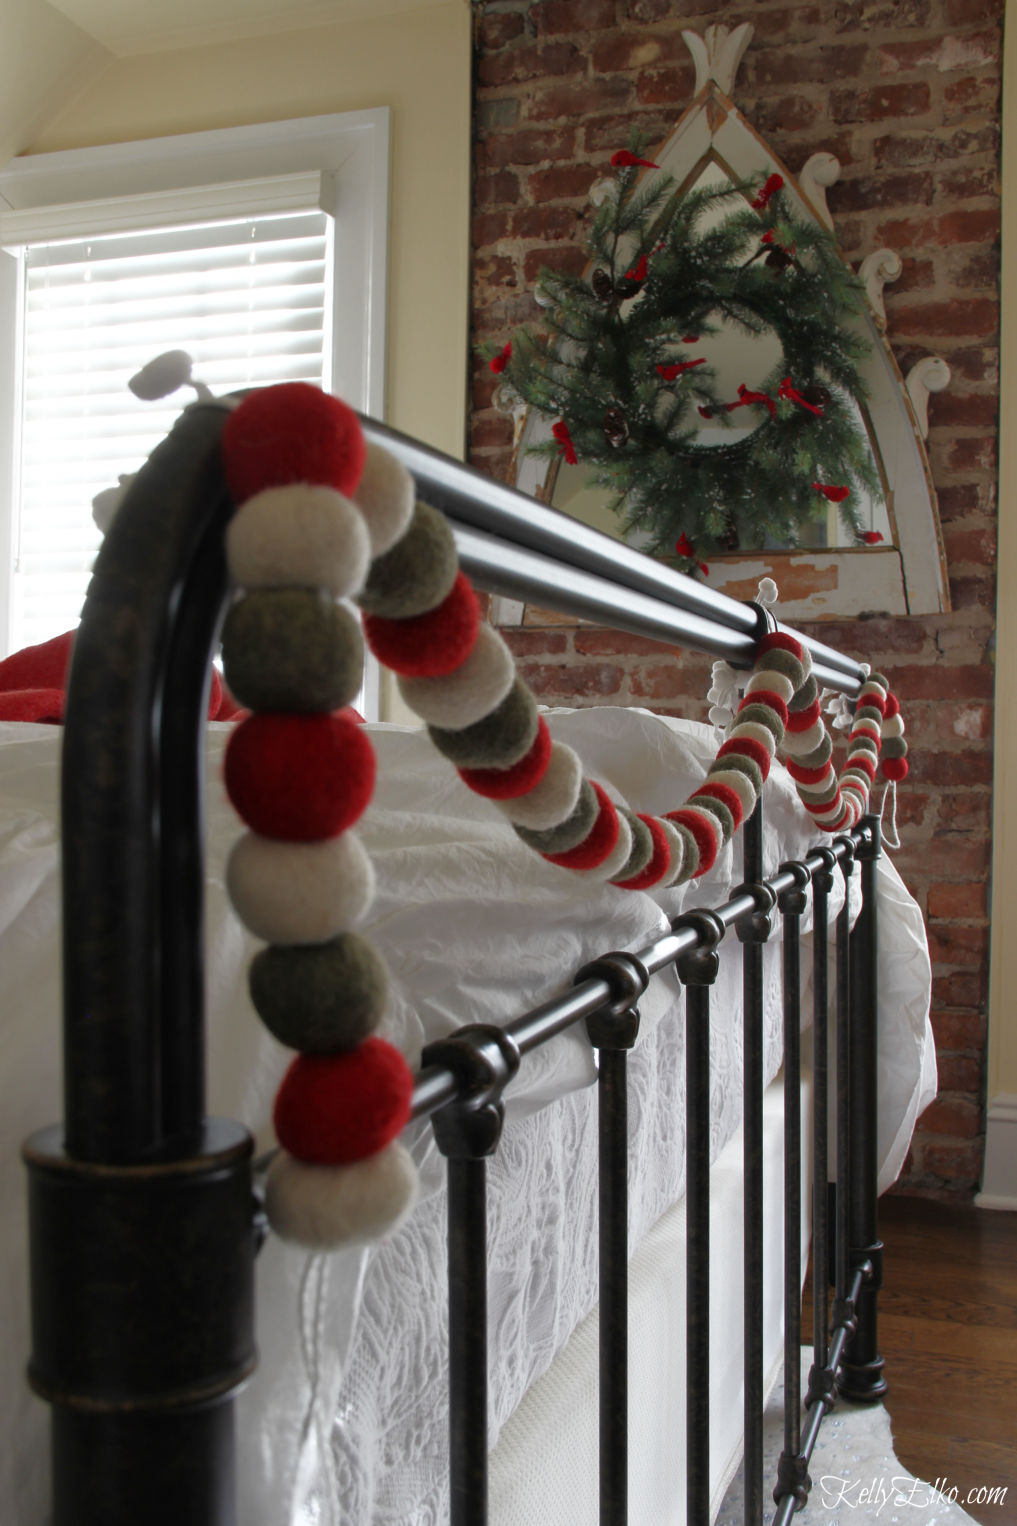 Cozy Christmas Guest Bedroom - love the flannel sheets, fringe throw and other whimsical decorating ideas kellyelko.com #christmas #christmasbedroom #christmasdecor #christmasdecorating #christmasbedding #christmaswreath #vintagechristmas #garland #bedroomfurniture